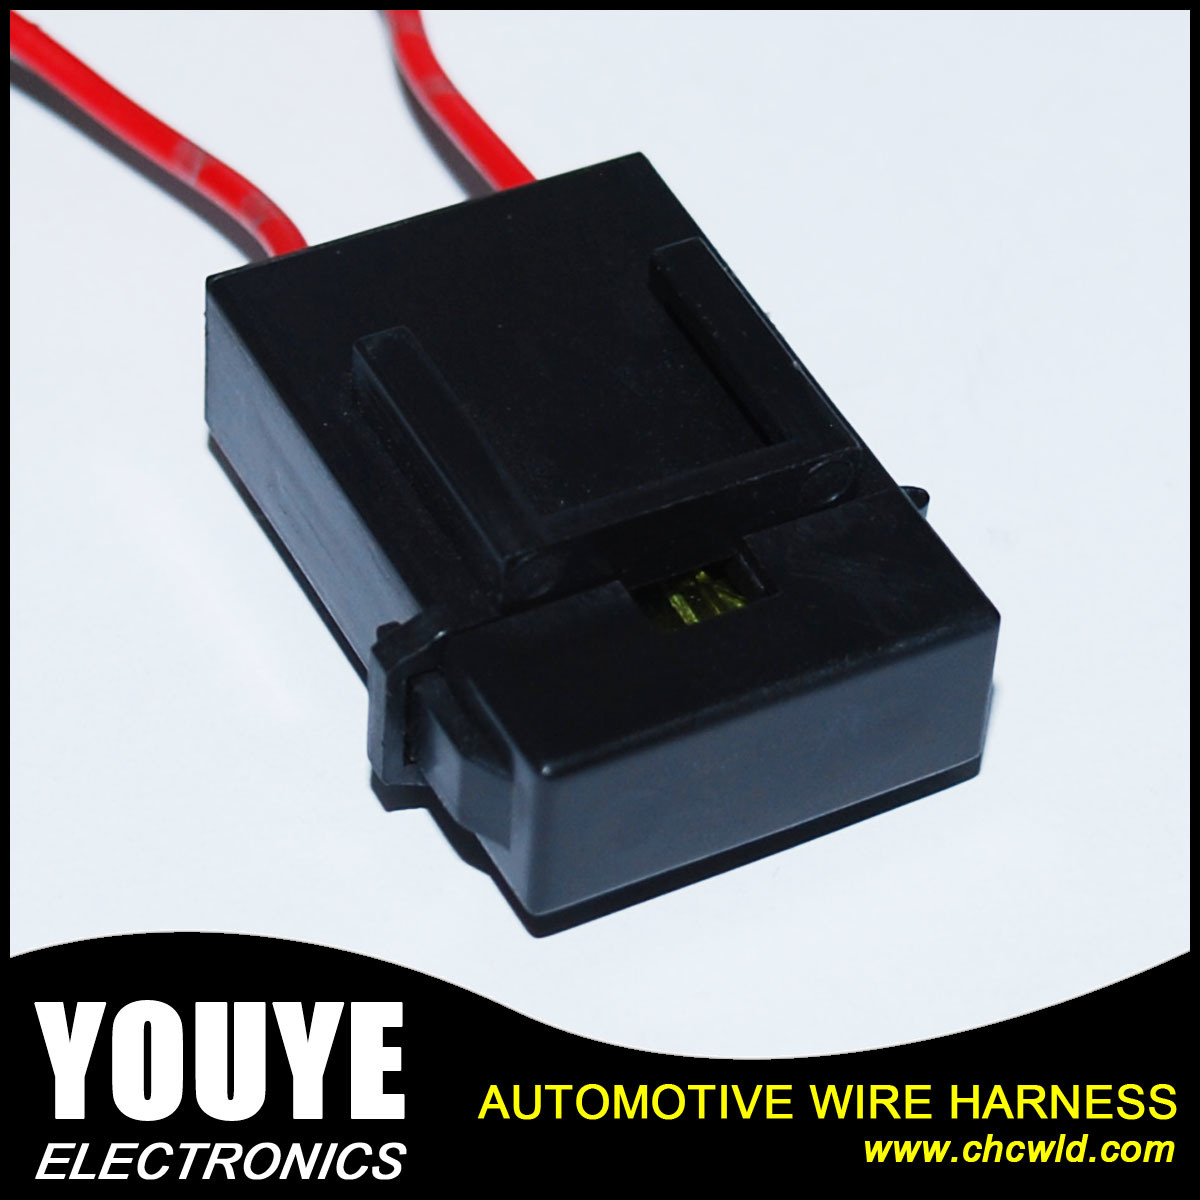 China Youye Automobile Copper Wire Harness Electronic Fuse Box Wiring Chevrolet Cars Iso9001 Ts16949